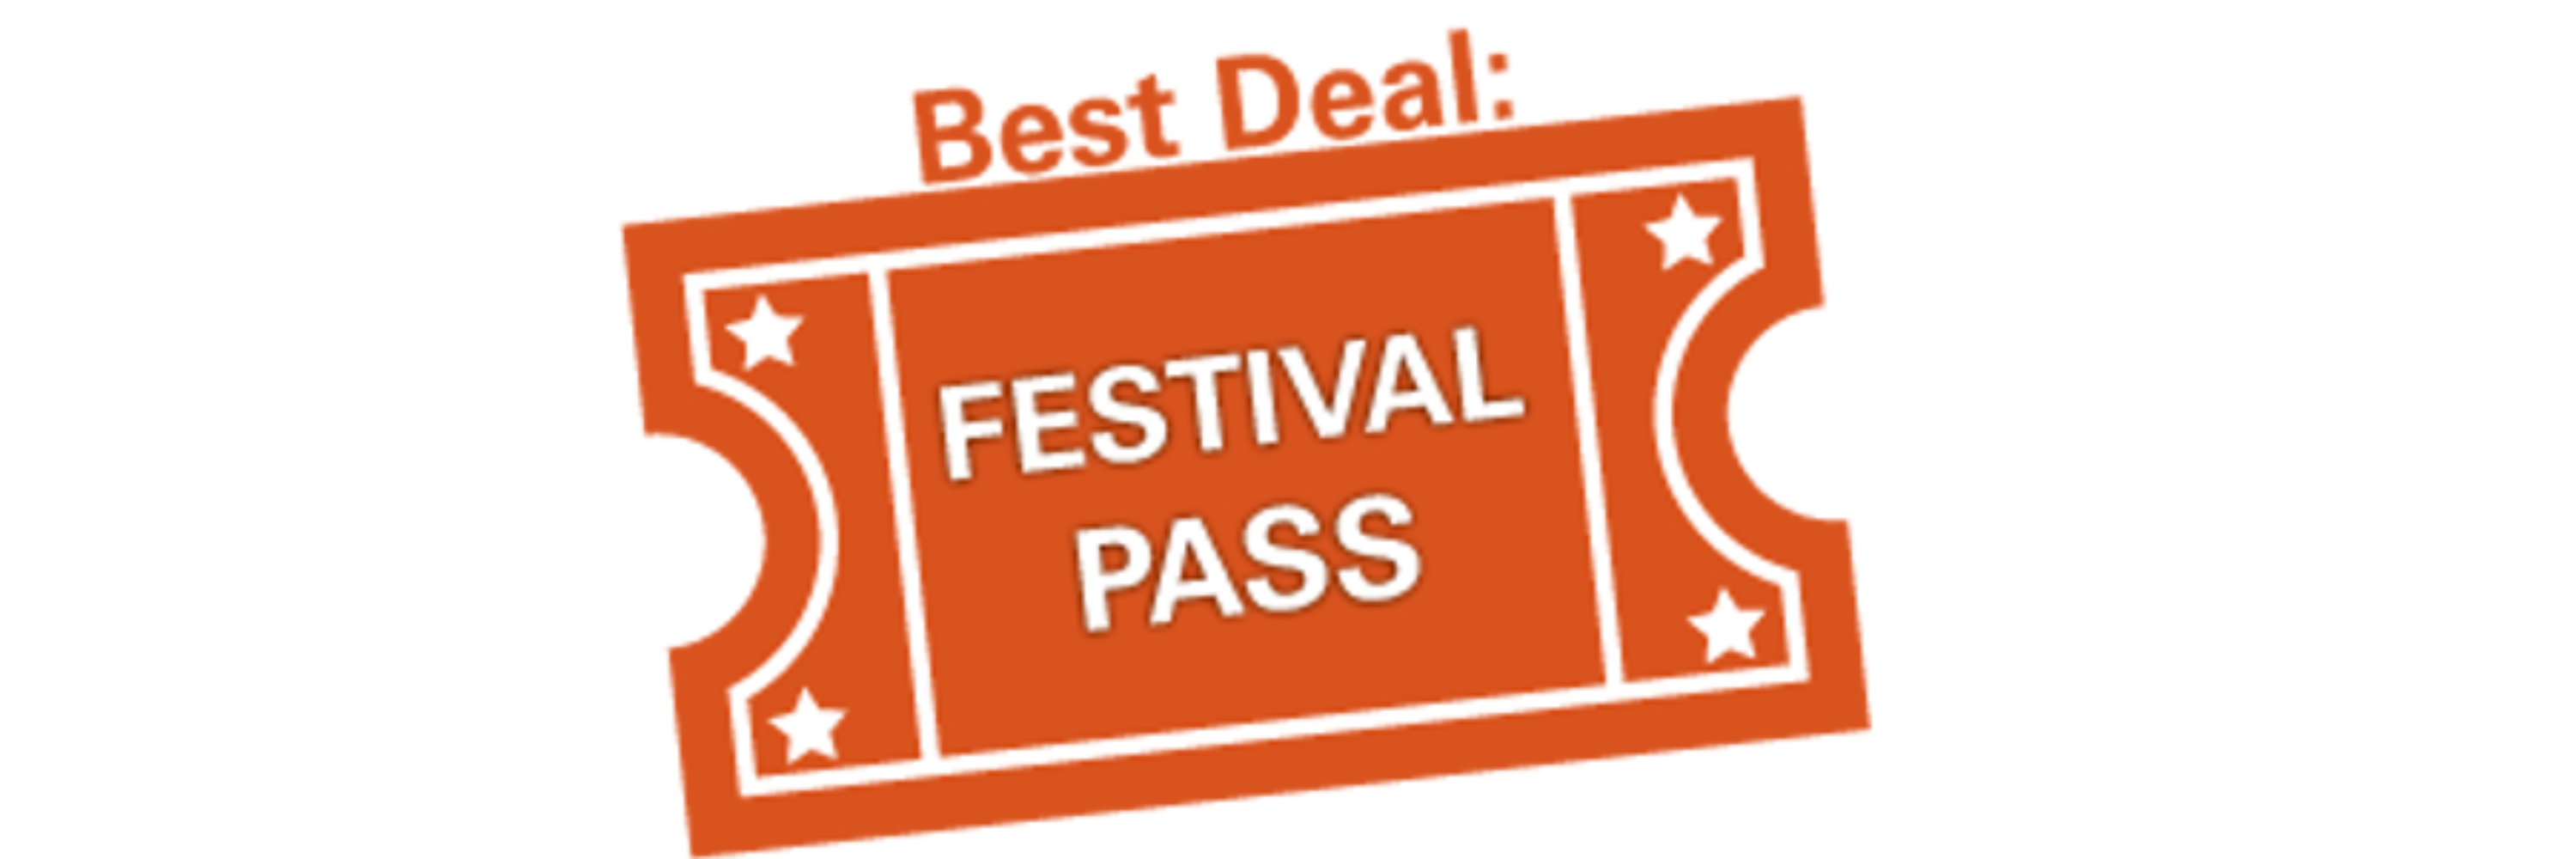 A Festival Pass is your best deal to see the Festival.